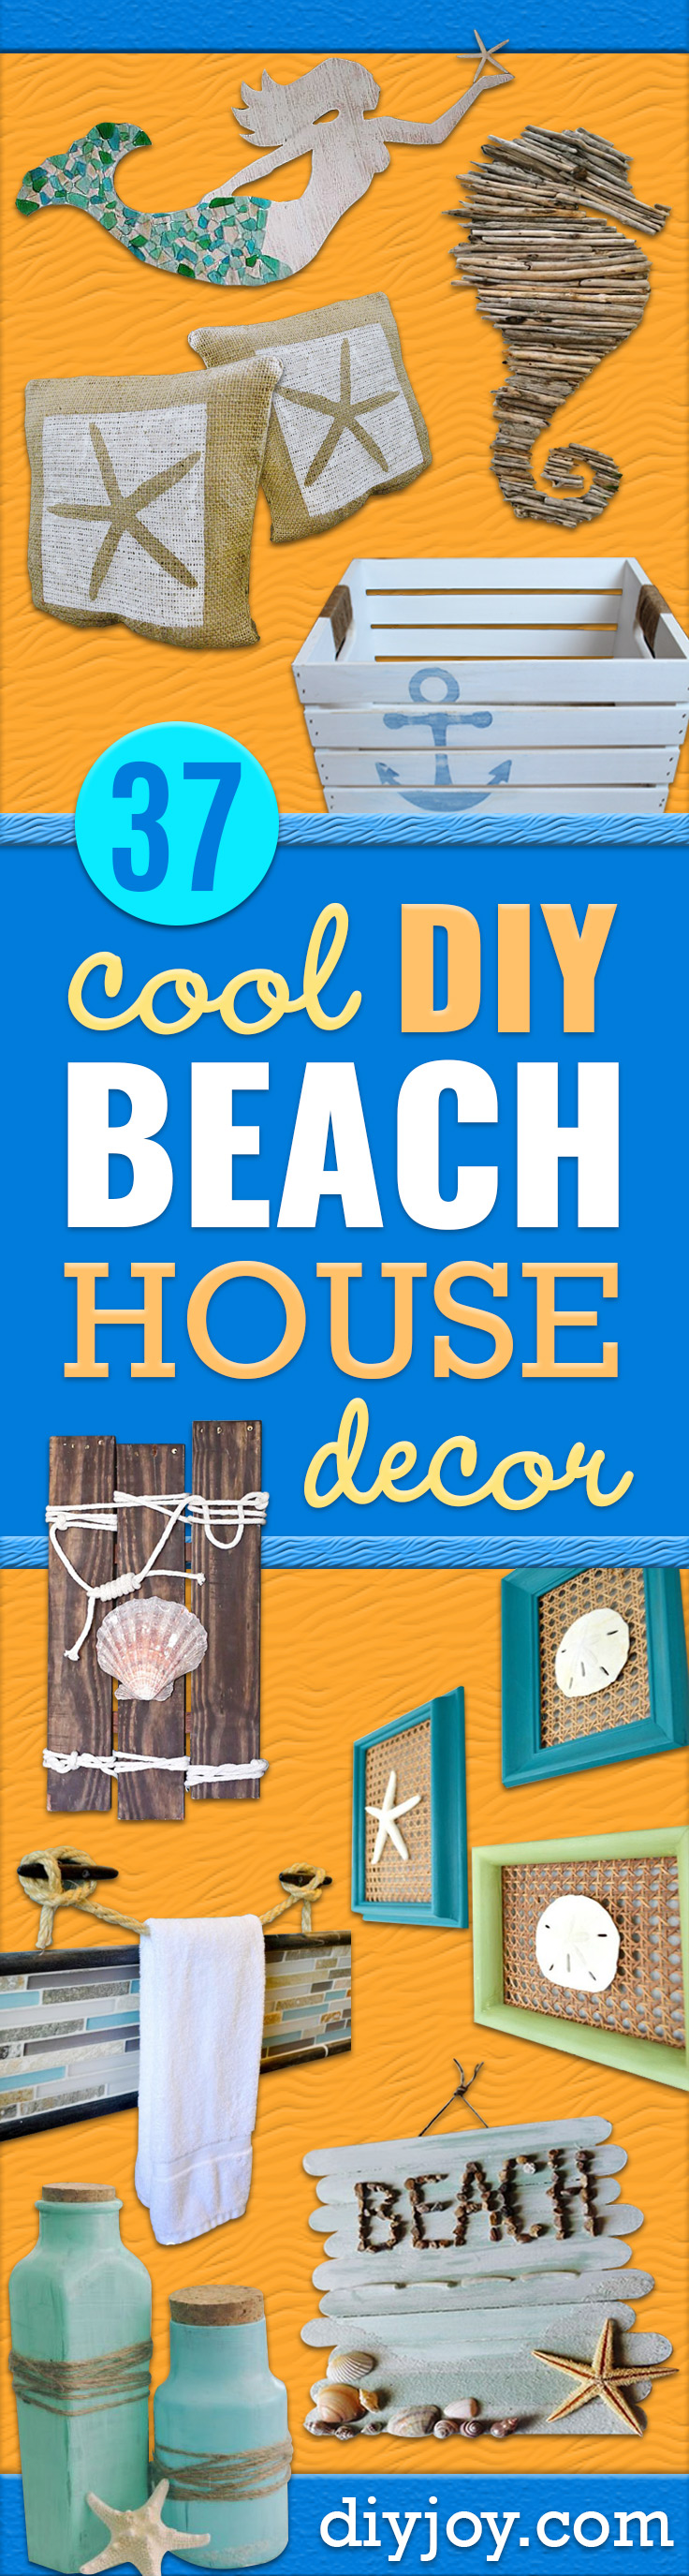 DIY Beach House Decor - Cool DIY Decor Ideas While On A Budget - Cool Ideas for Decorating Your Beach Home With Shells, Sand and Summer Wall Art - Crafts and Do It Yourself Projects With A Breezy, Blue, Summery Feel - White Decor and Shiplap, Birchwood Boats, Beachy Sea Glass Art Projects for Living Room, Bedroom and Kitchen